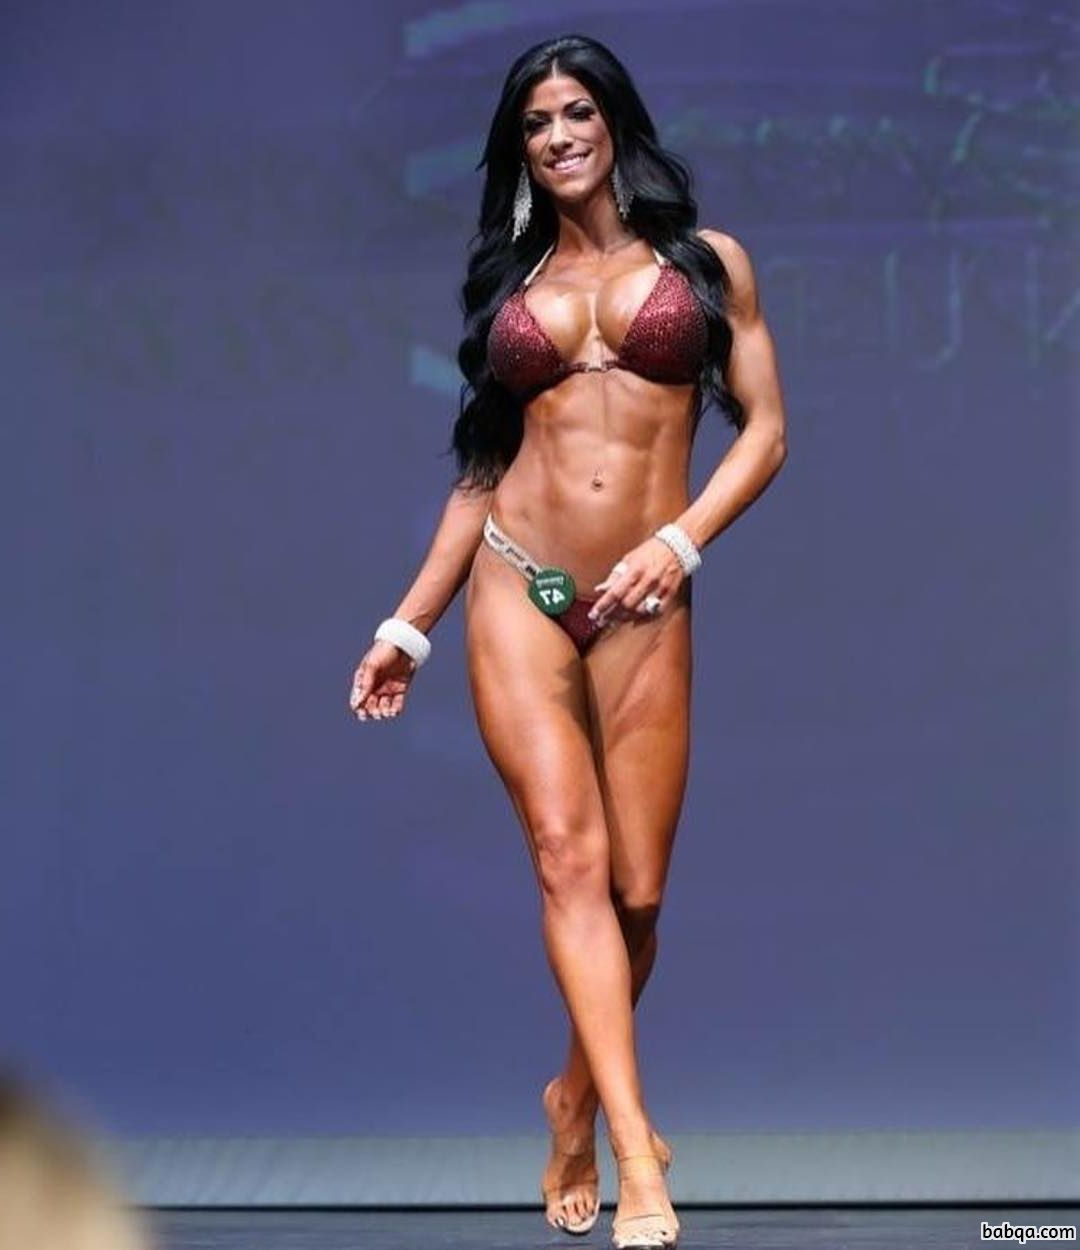 beautiful female bodybuilder with strong body and toned ass repost from g+